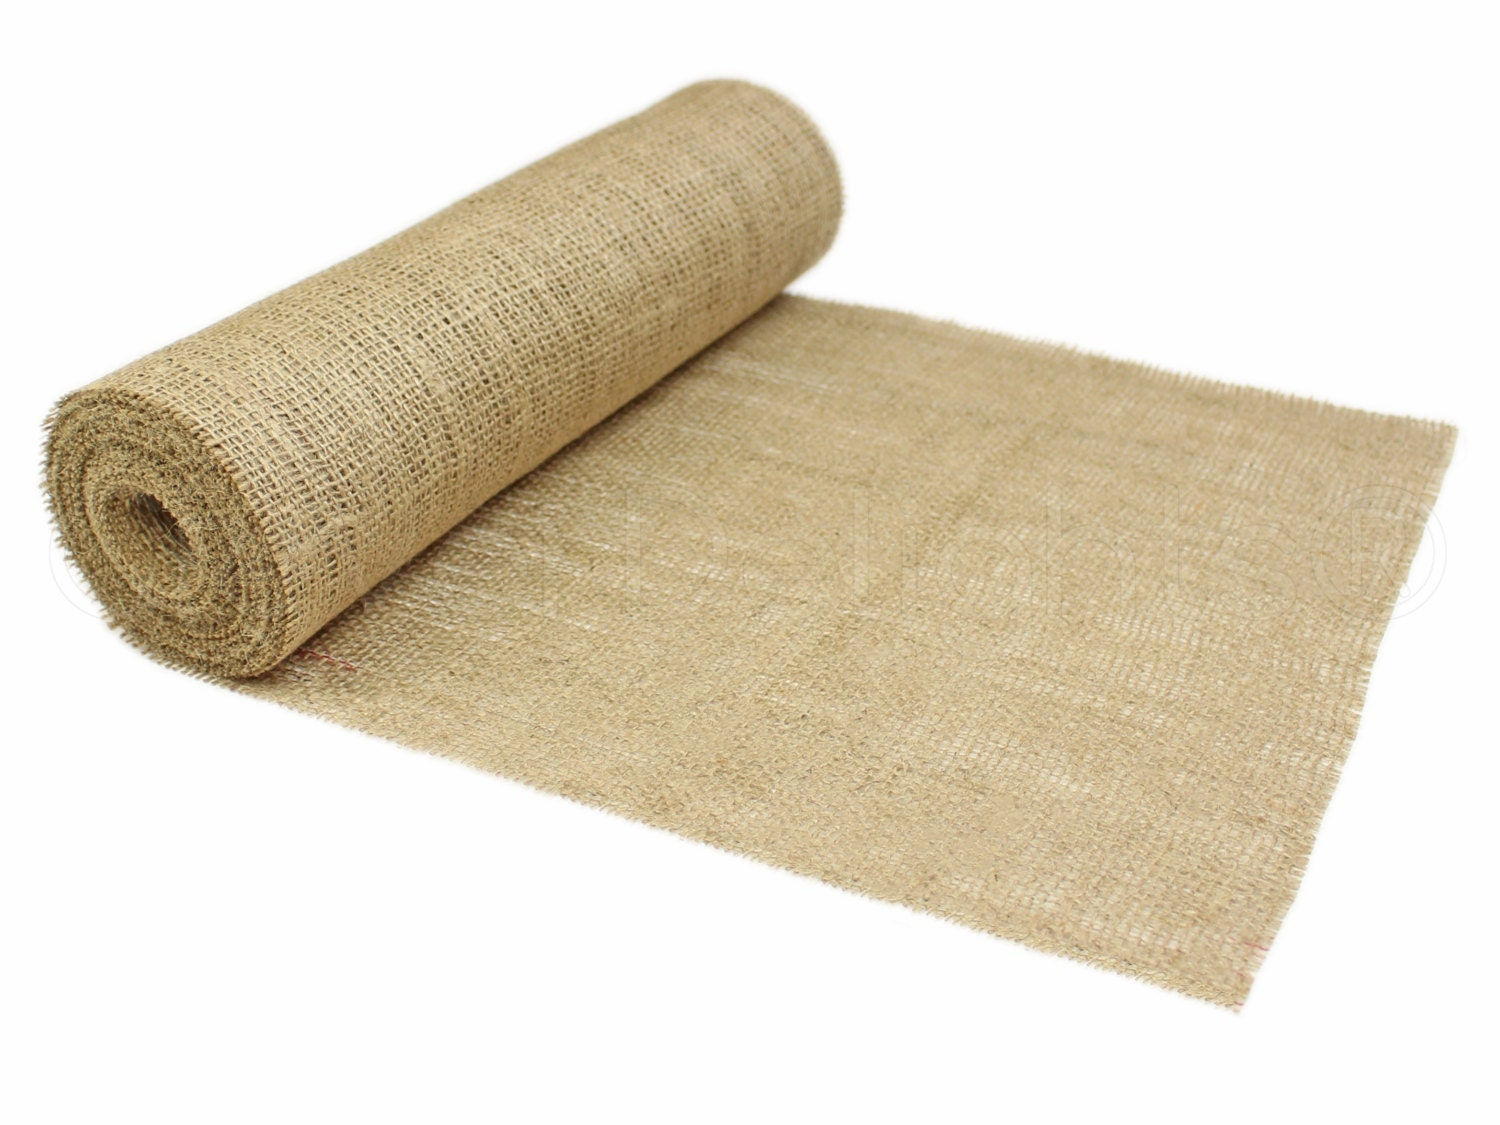 10 yards 14 burlap roll unfinished edges eco for 10 minute table runner 30 minute tote bag